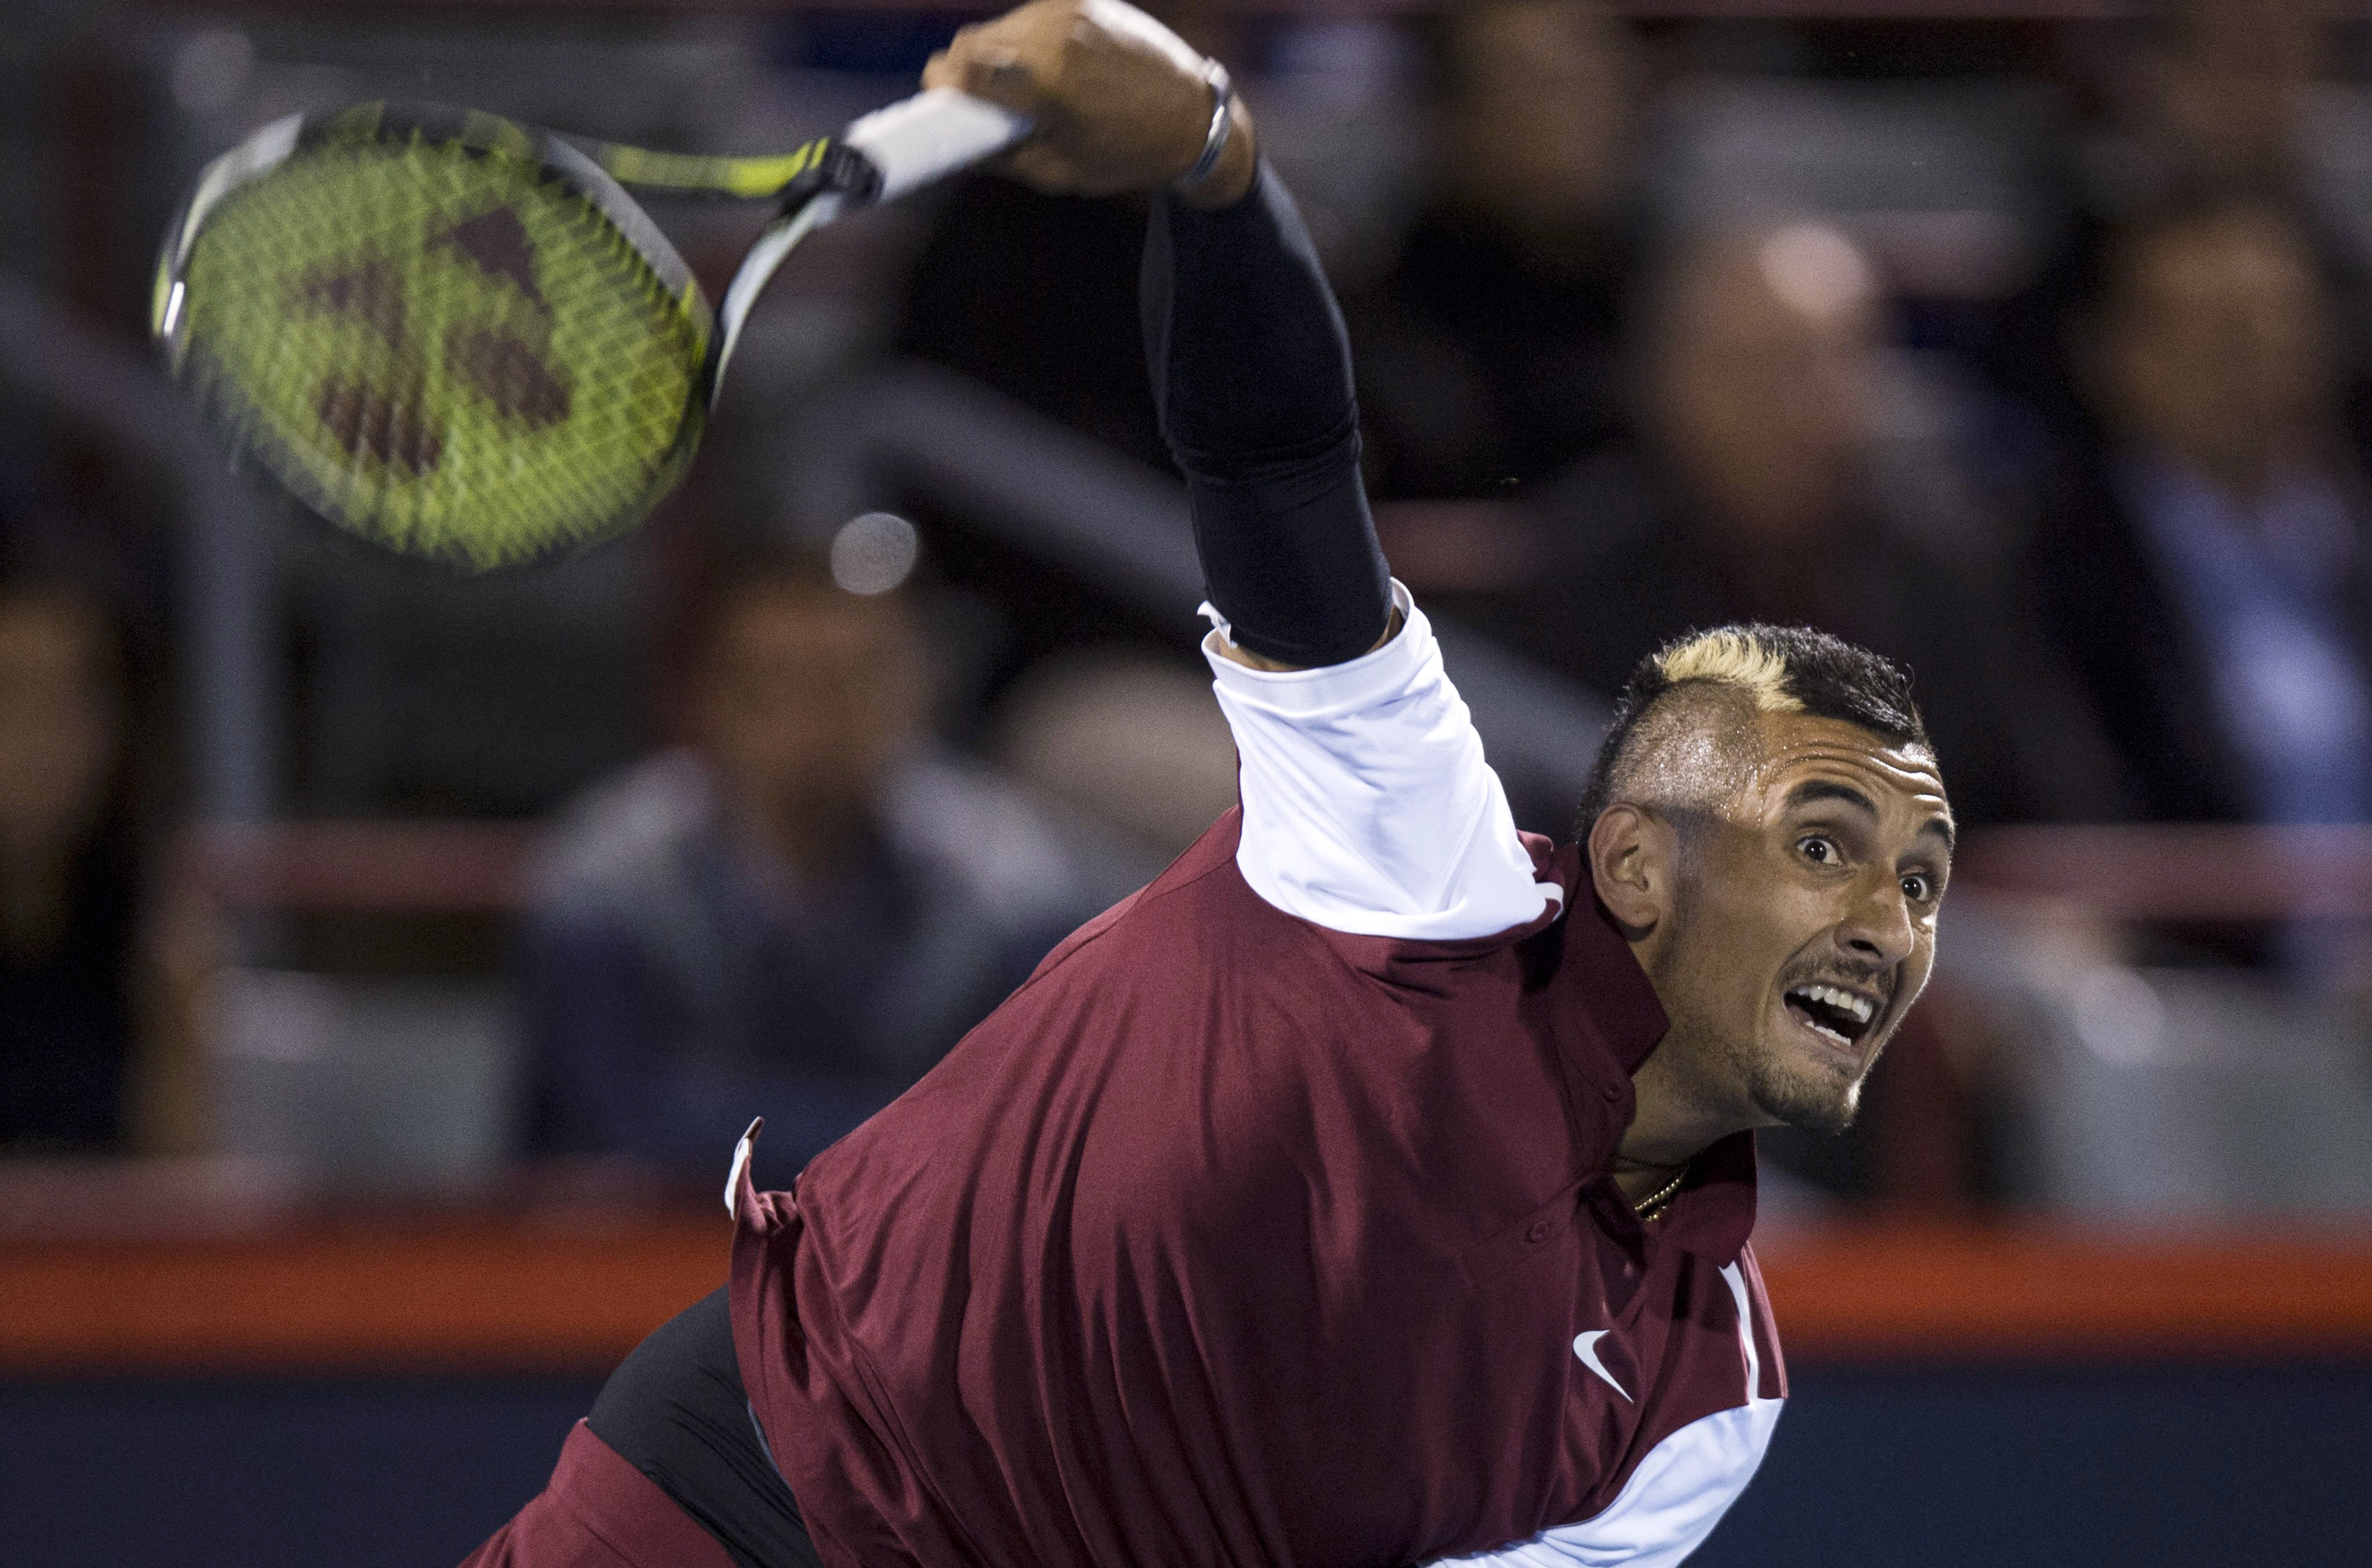 Nick Kyrgios of Australia serves to Stan Wawrinka of Switzerland during second round of play at the Rogers Cup tennis tournament Wednesday August 12, 2015 in Montreal. THE CANADIAN PRESS/Paul Chiasson at the Rogers Cup tennis tournament Wednesday, Aug. 12